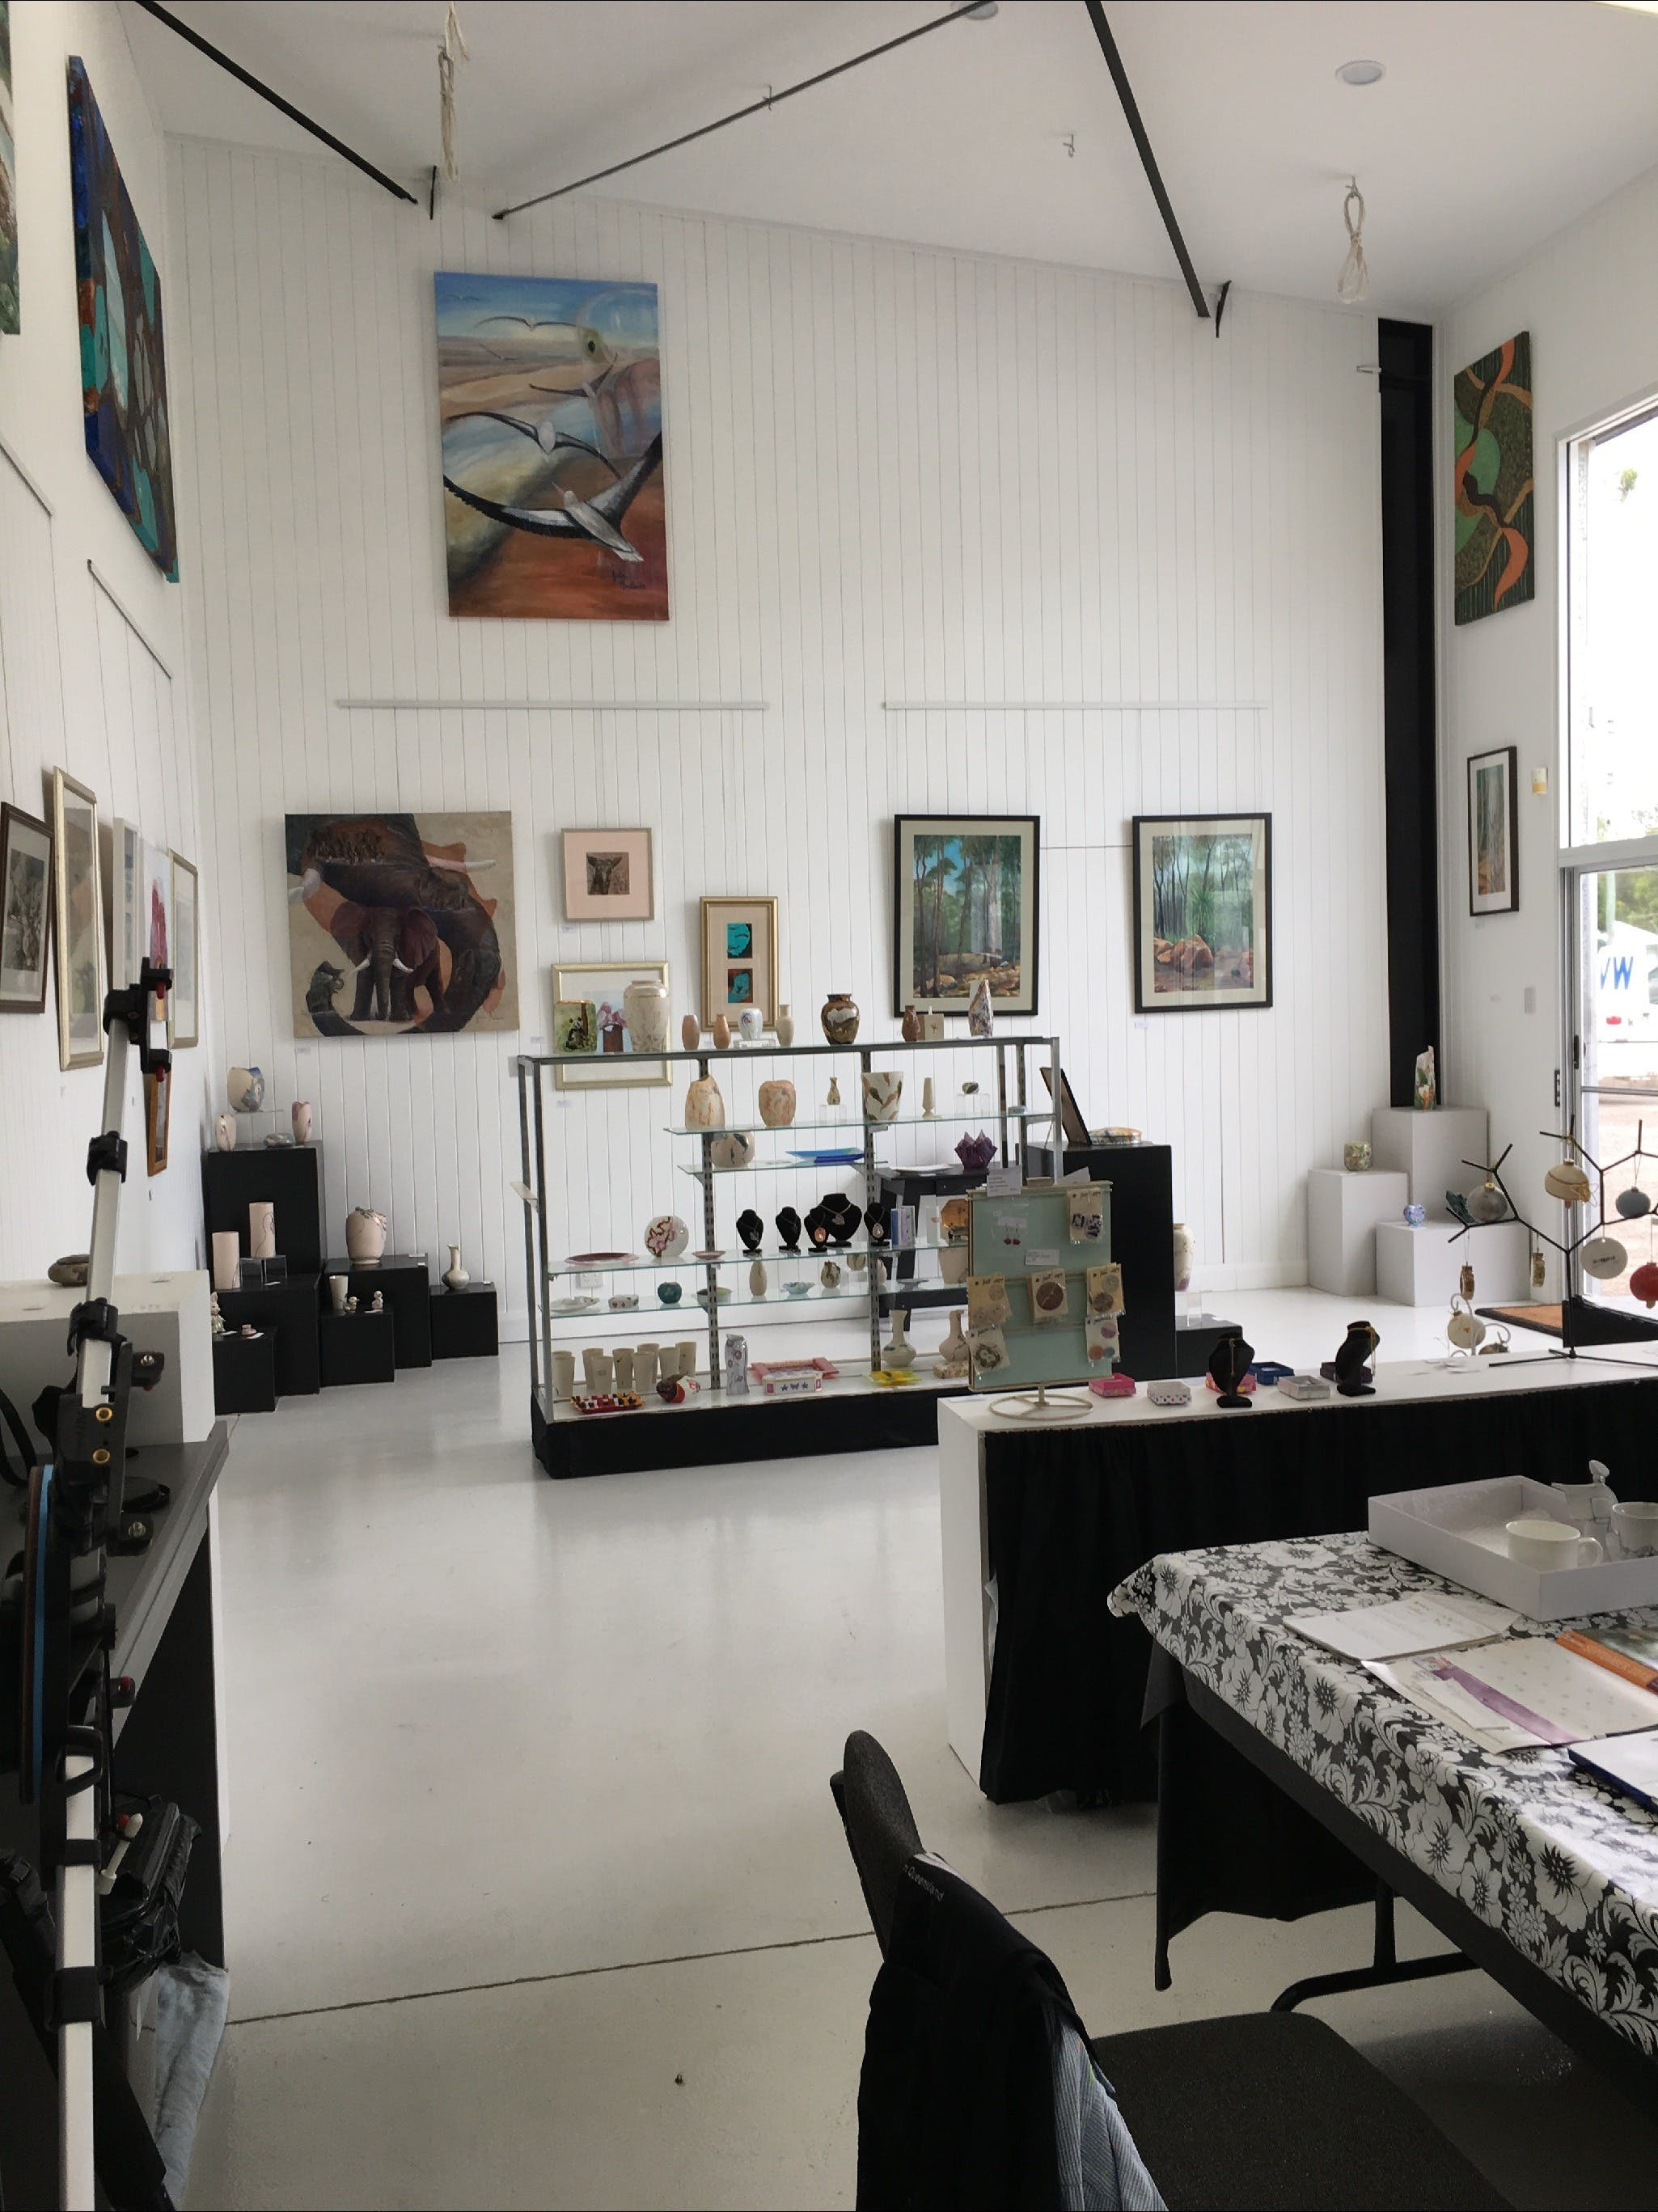 Julesart Studio/Gallery - Accommodation Brisbane